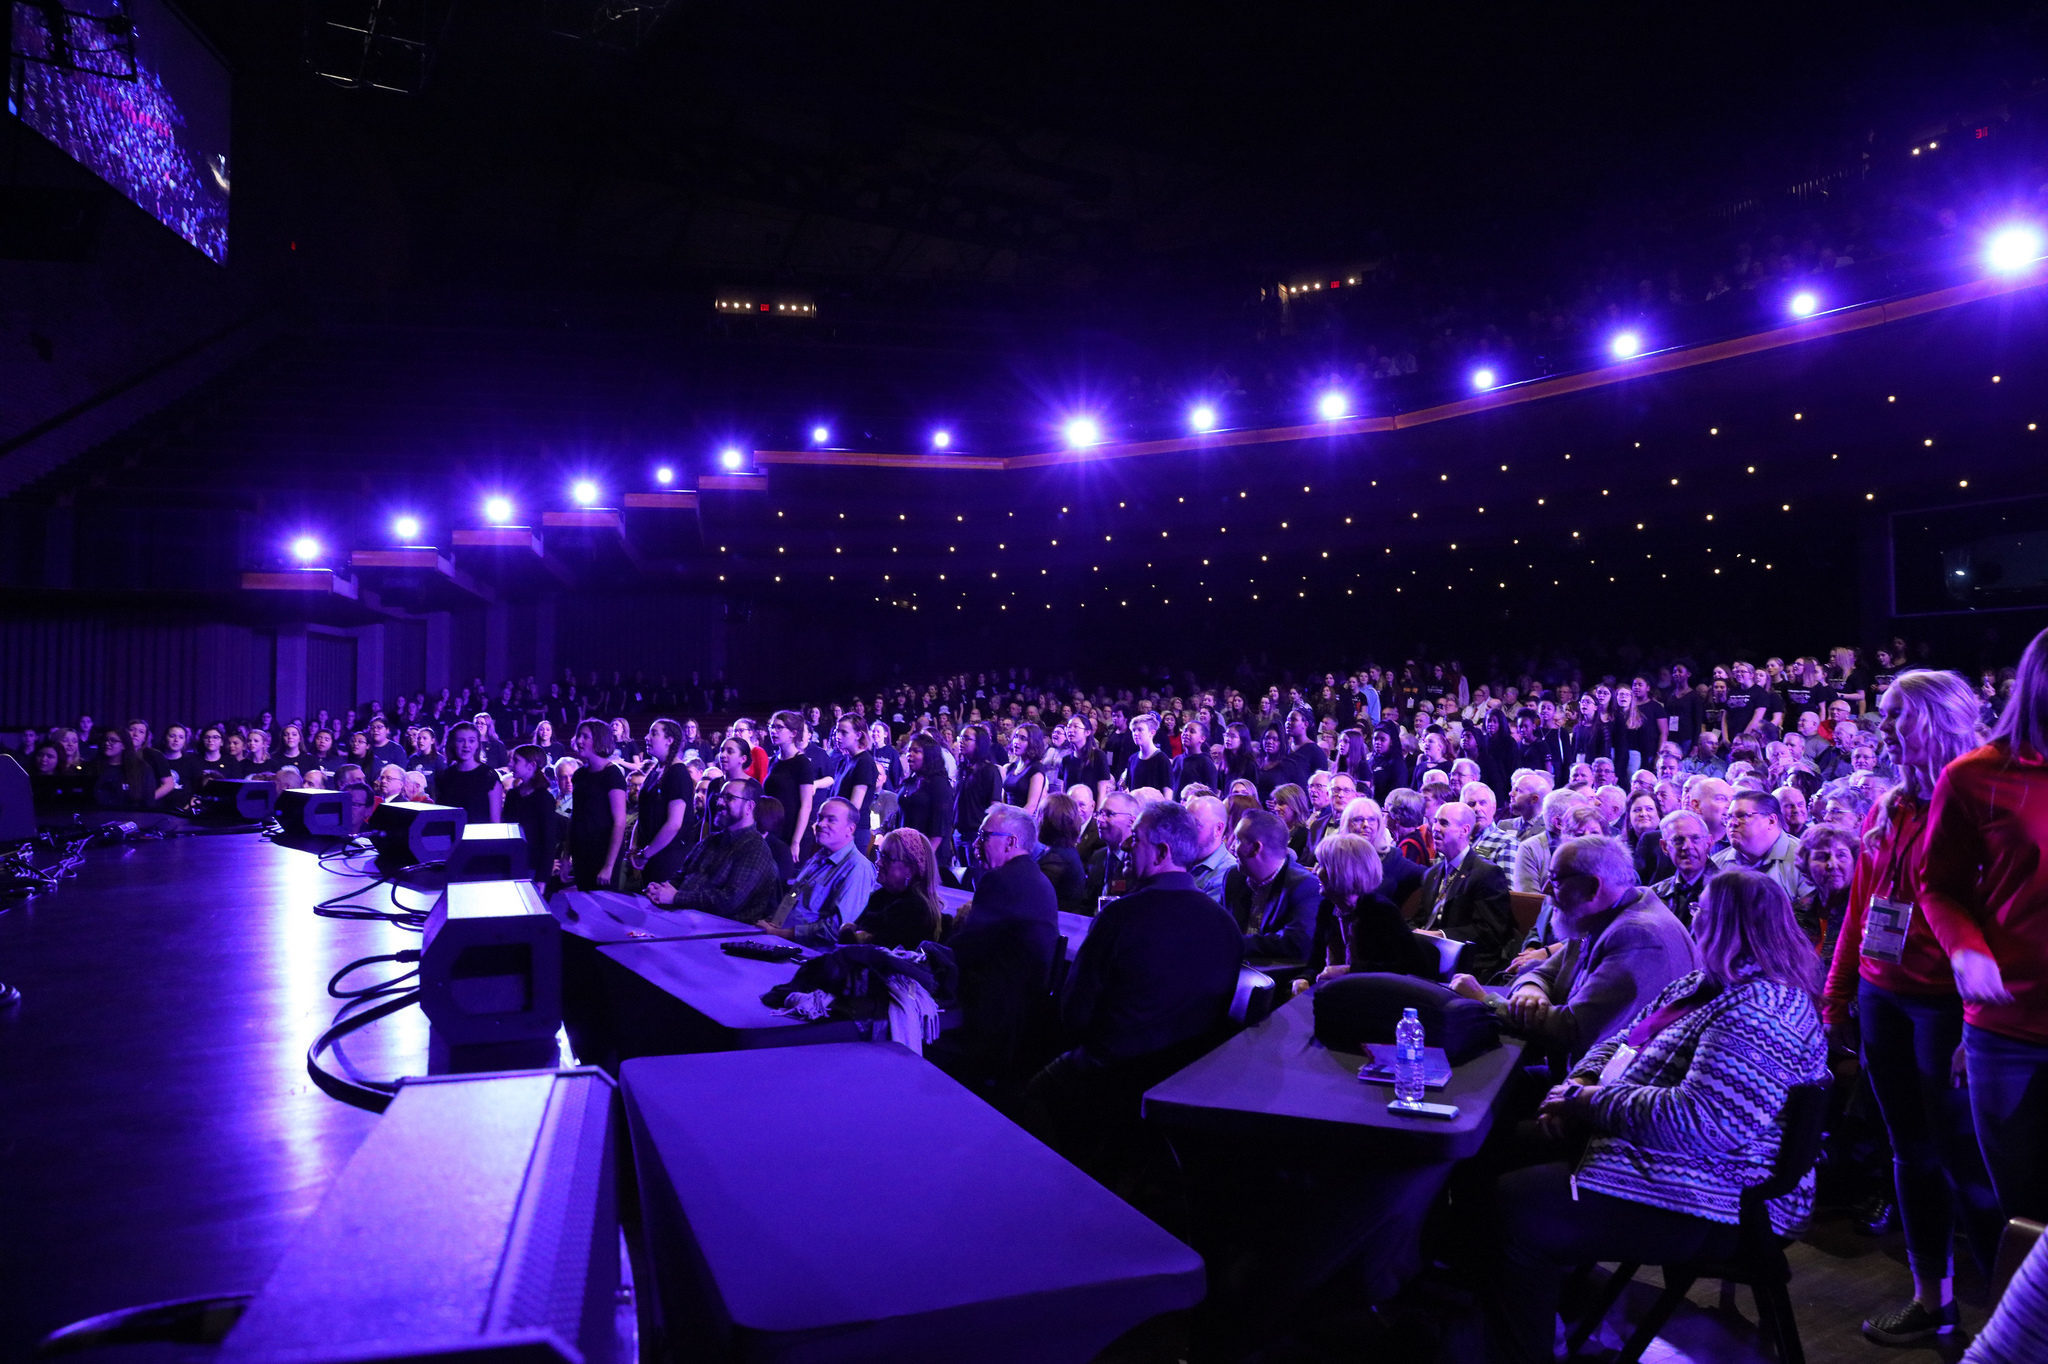 Midwinter Convention at the Grand Ole Opry